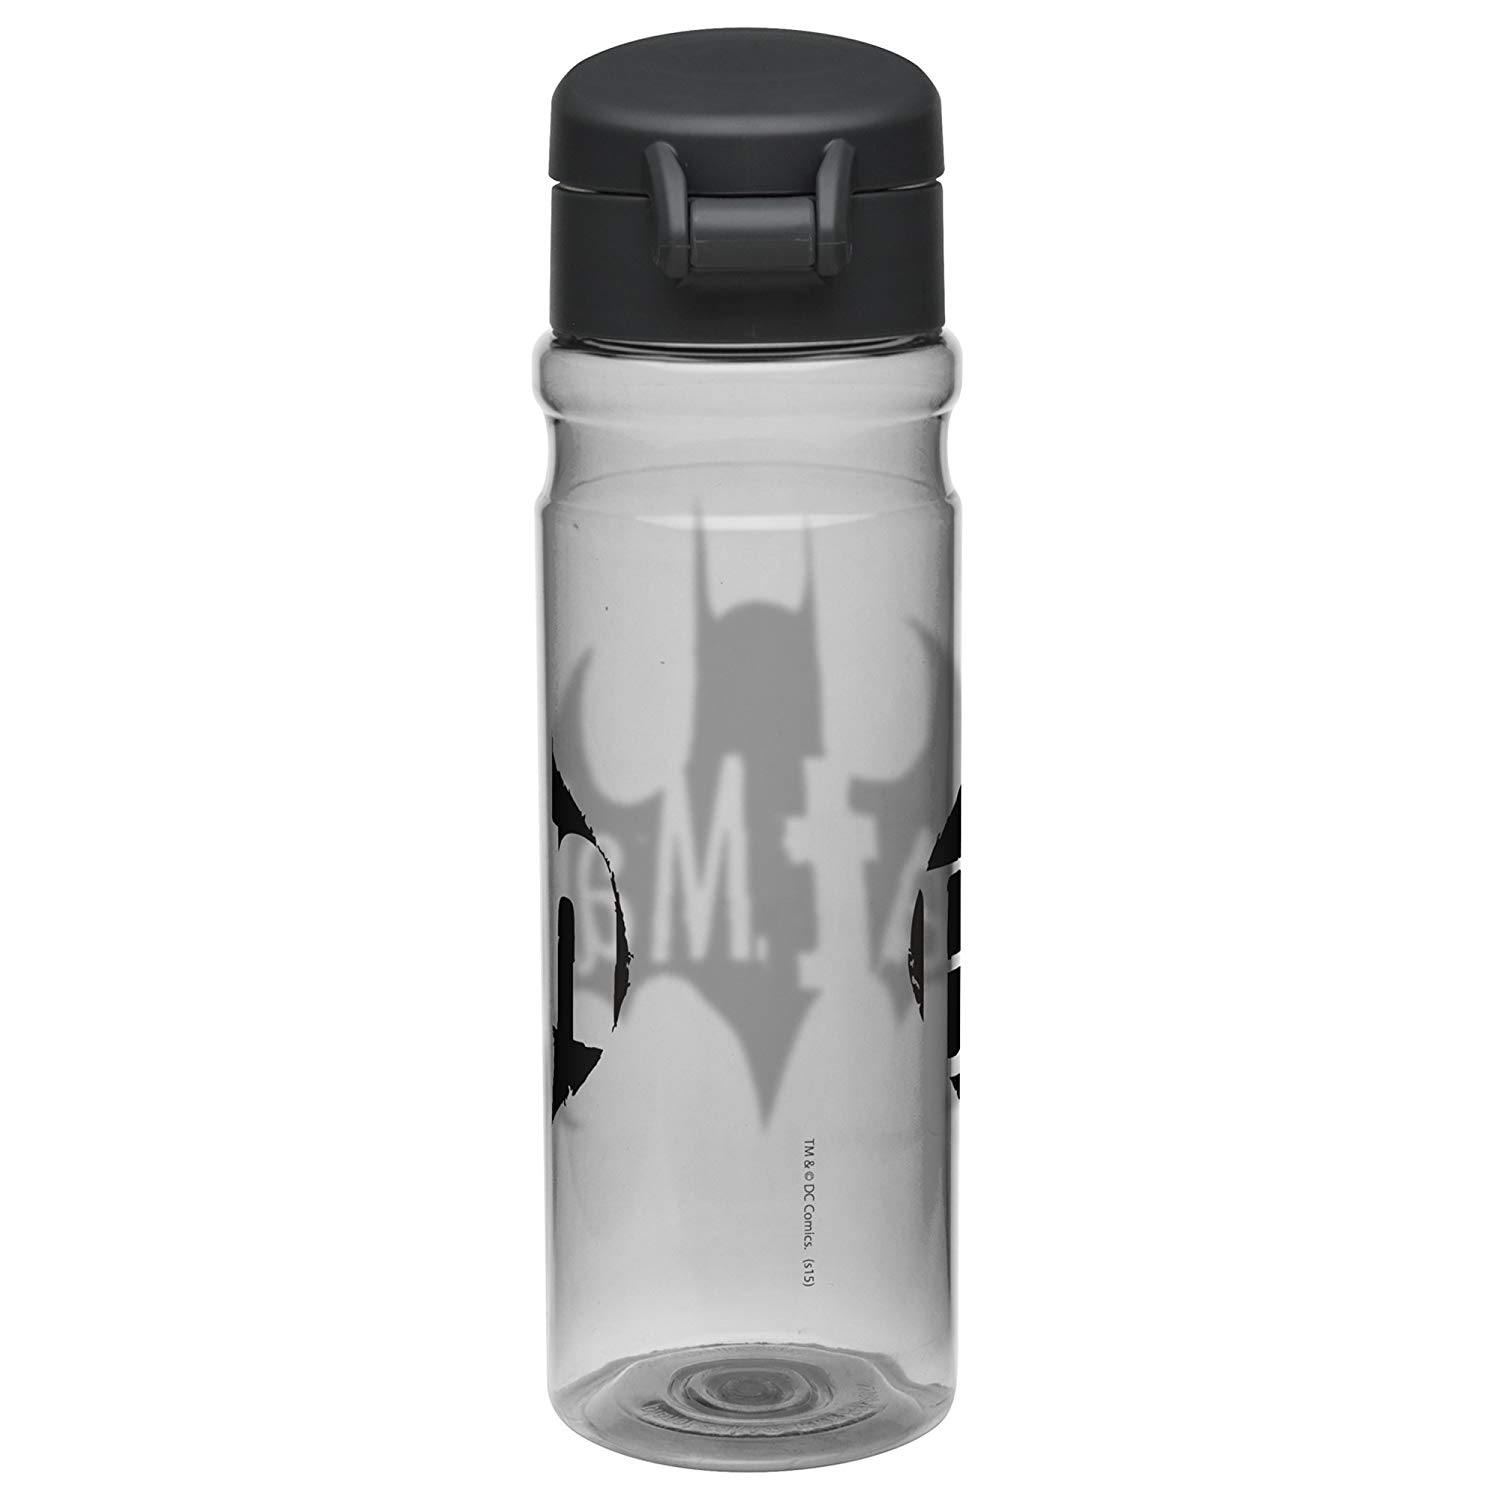 905d89542c Get Quotations · Zak! Designs Tritan Water Bottle with Flip-top Cap  featuring DC Comics Retro Batman